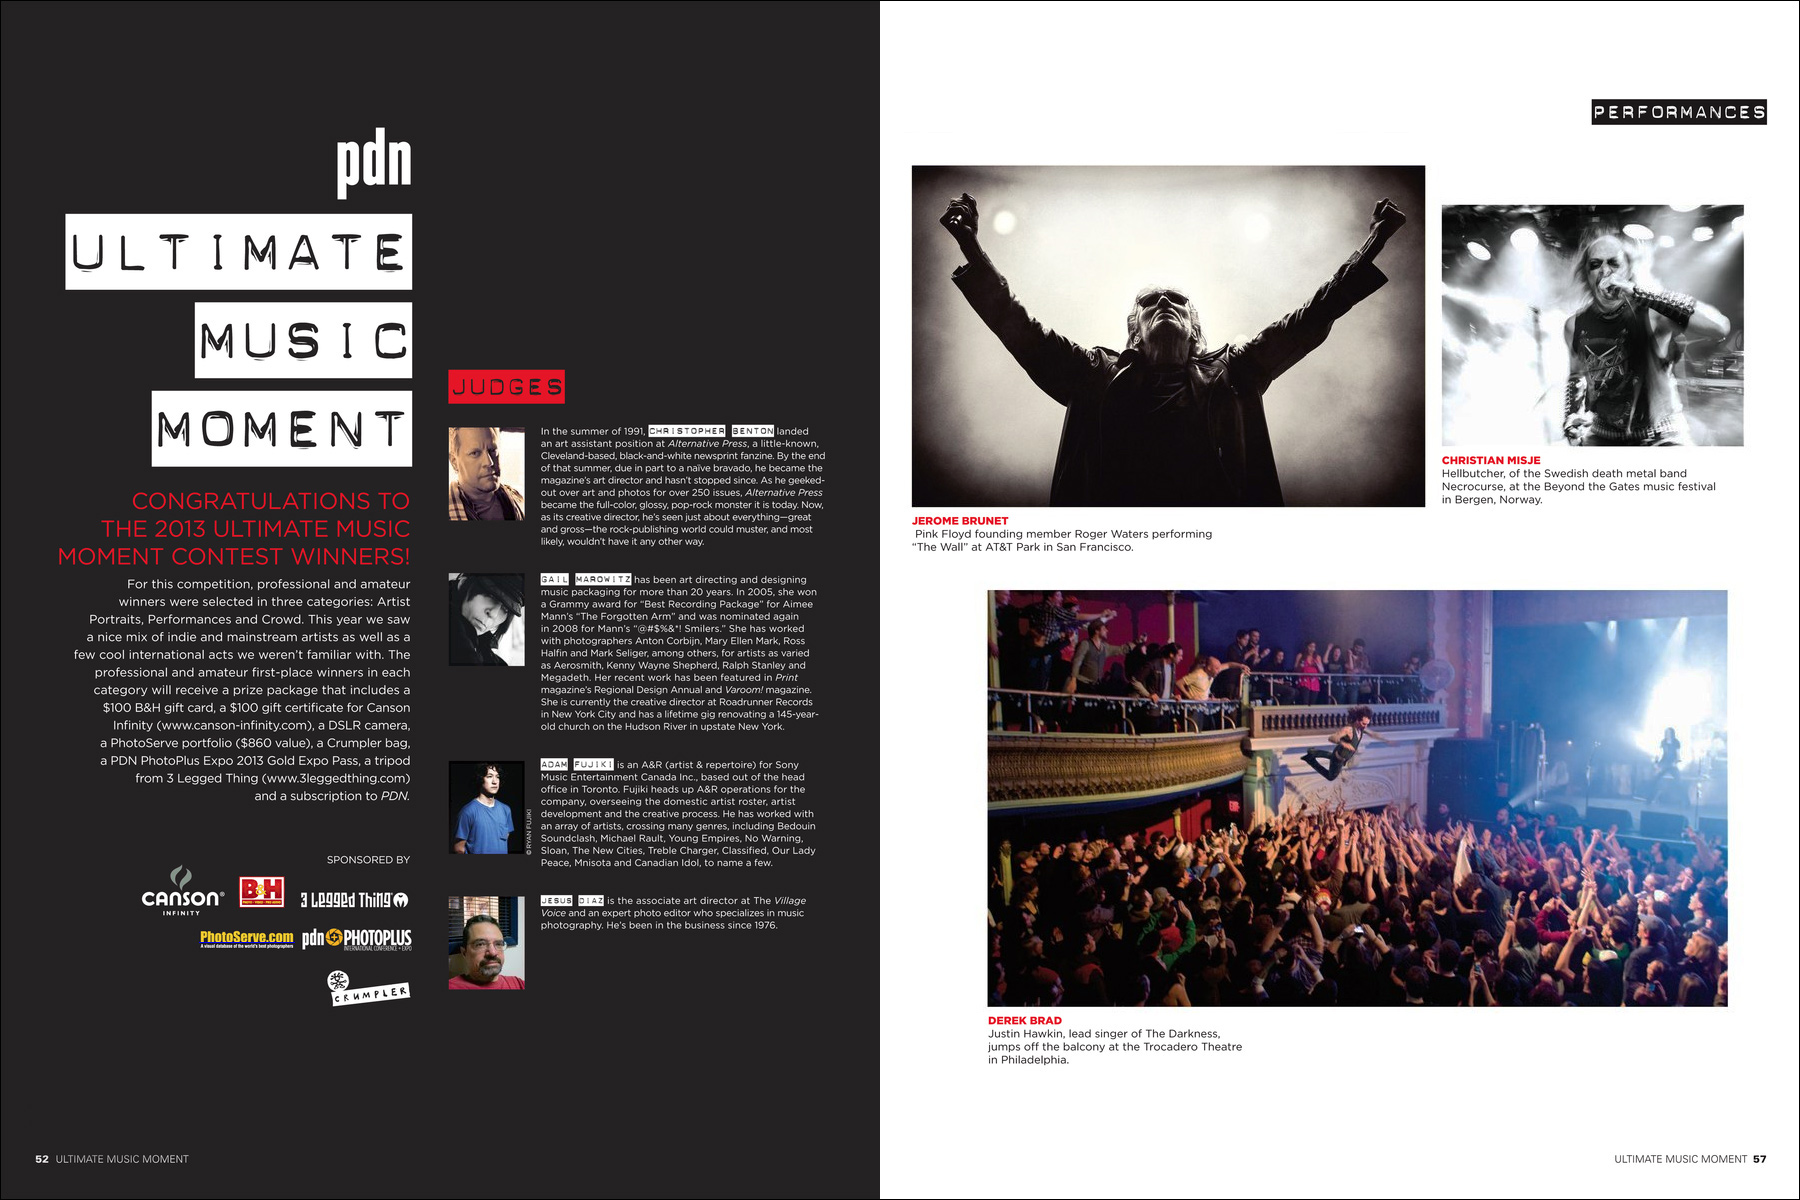 PDN_Ultimate_Music-Moment_Roger_Waters2013